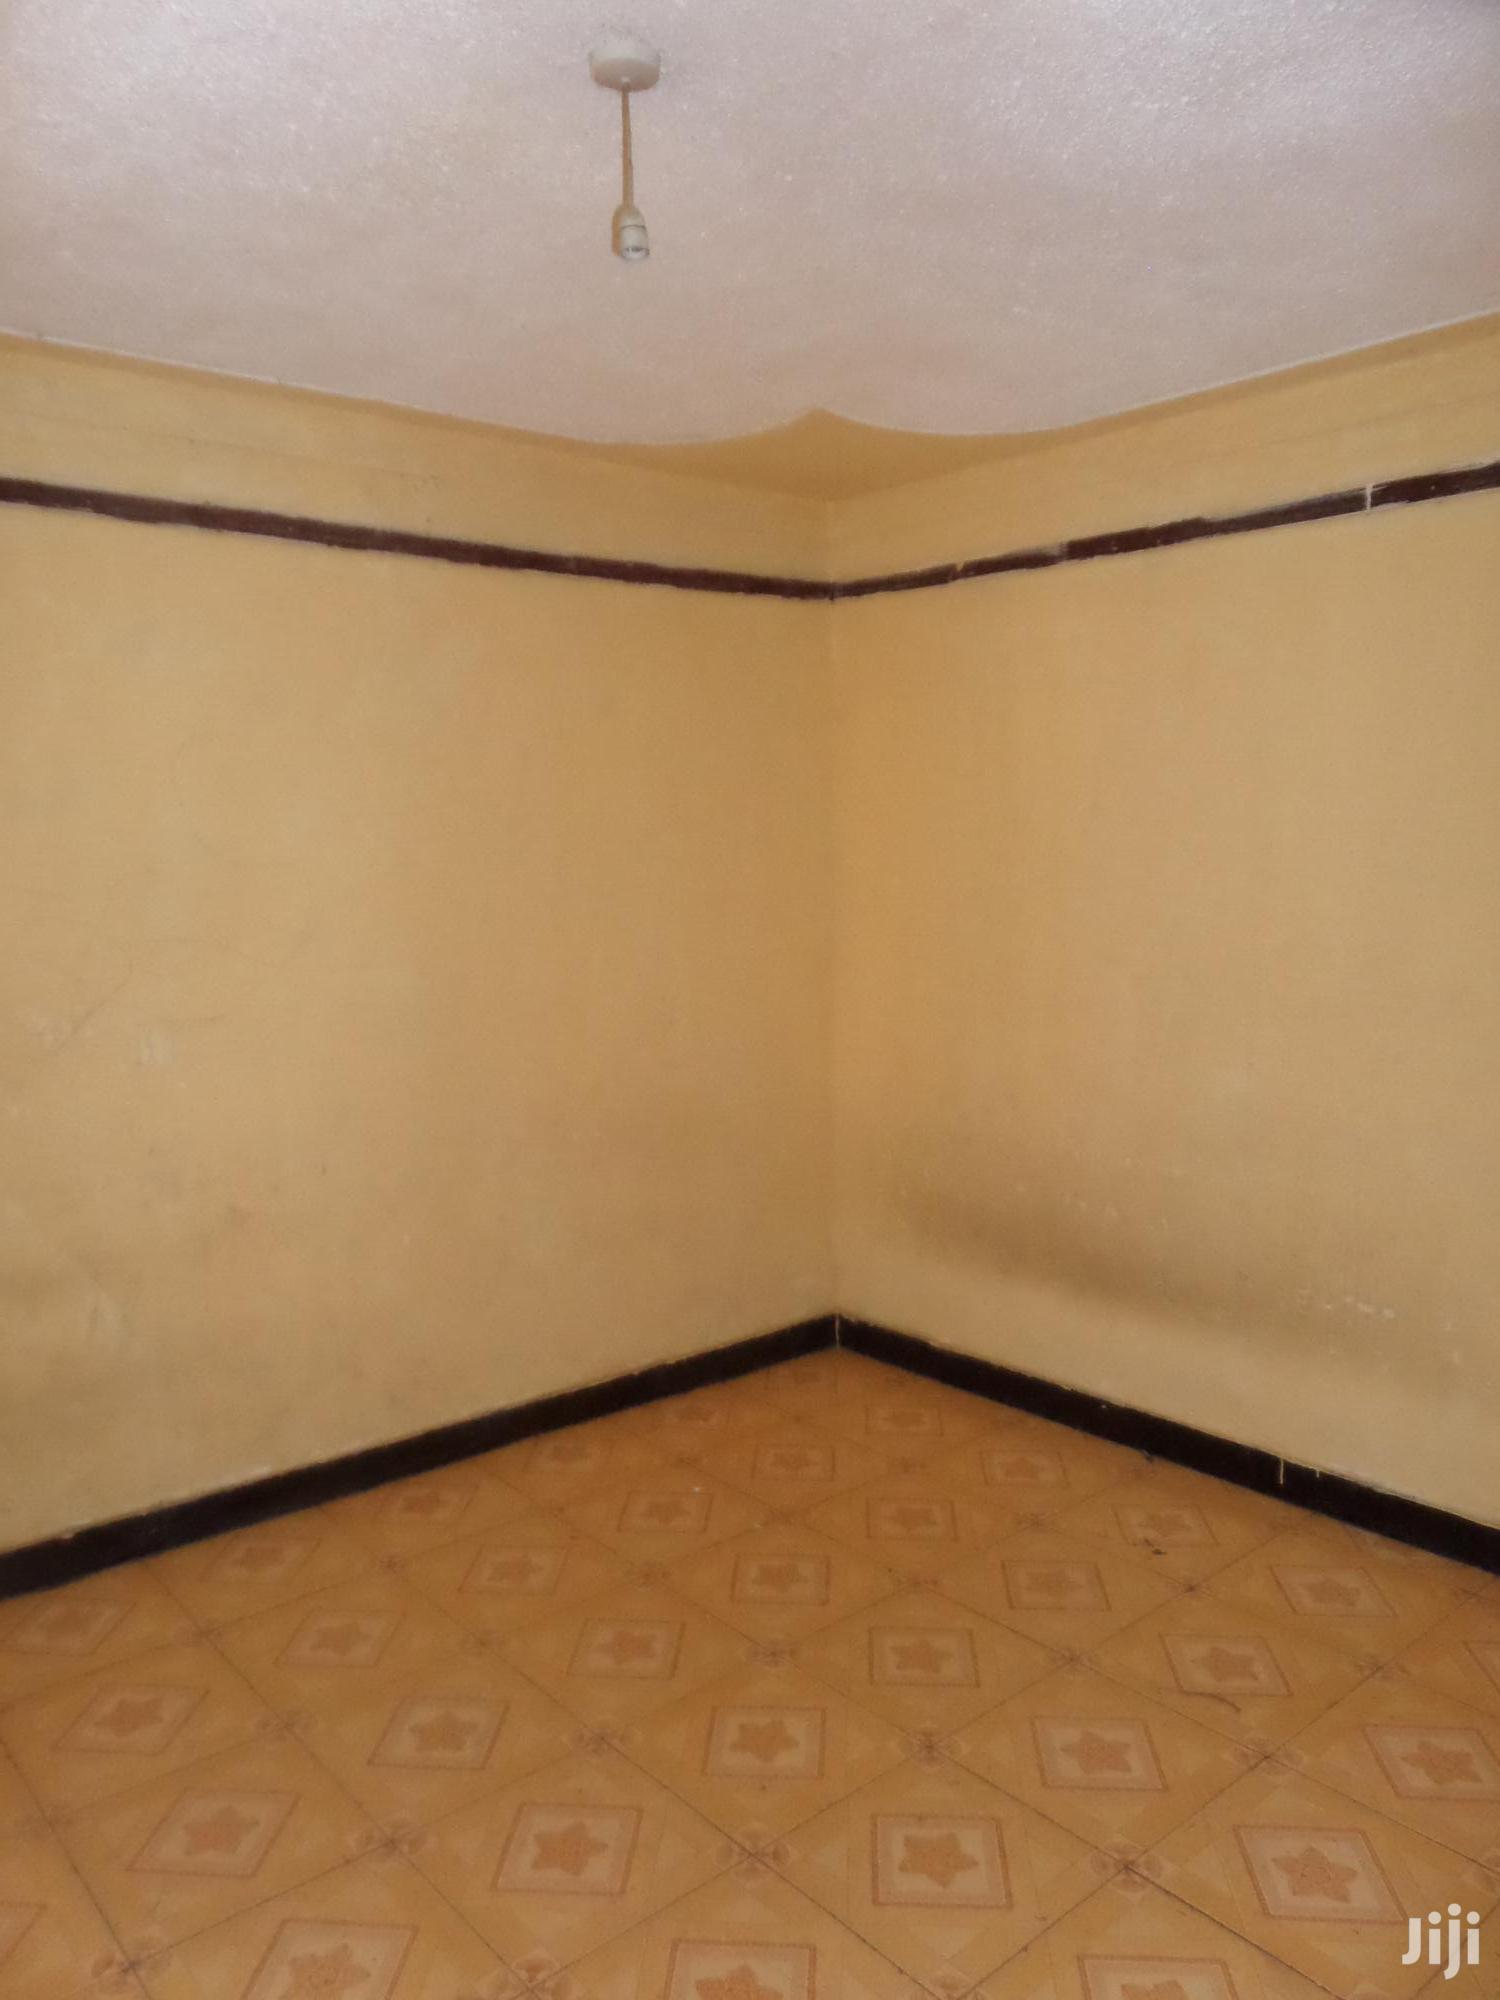 Kawempe One Bedroom House For Rent | Houses & Apartments For Rent for sale in Kampala, Central Region, Uganda